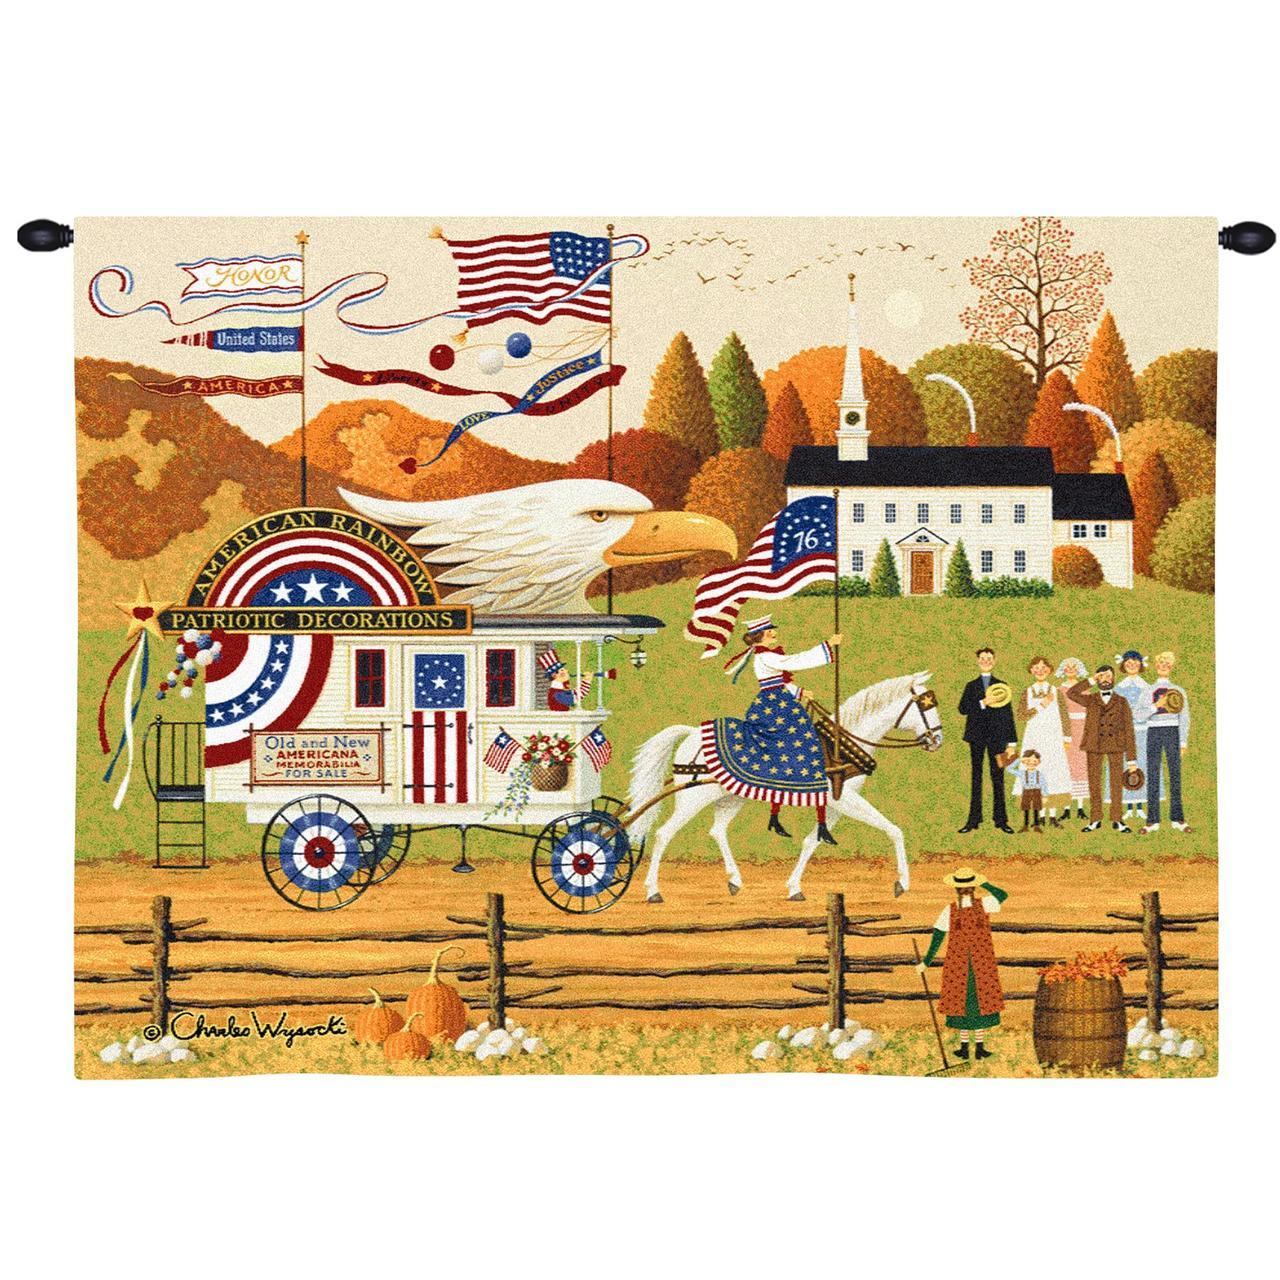 Tapestry-Wall Hanging-26 x 34-Patriotic-Americana-So Proudly We Hail